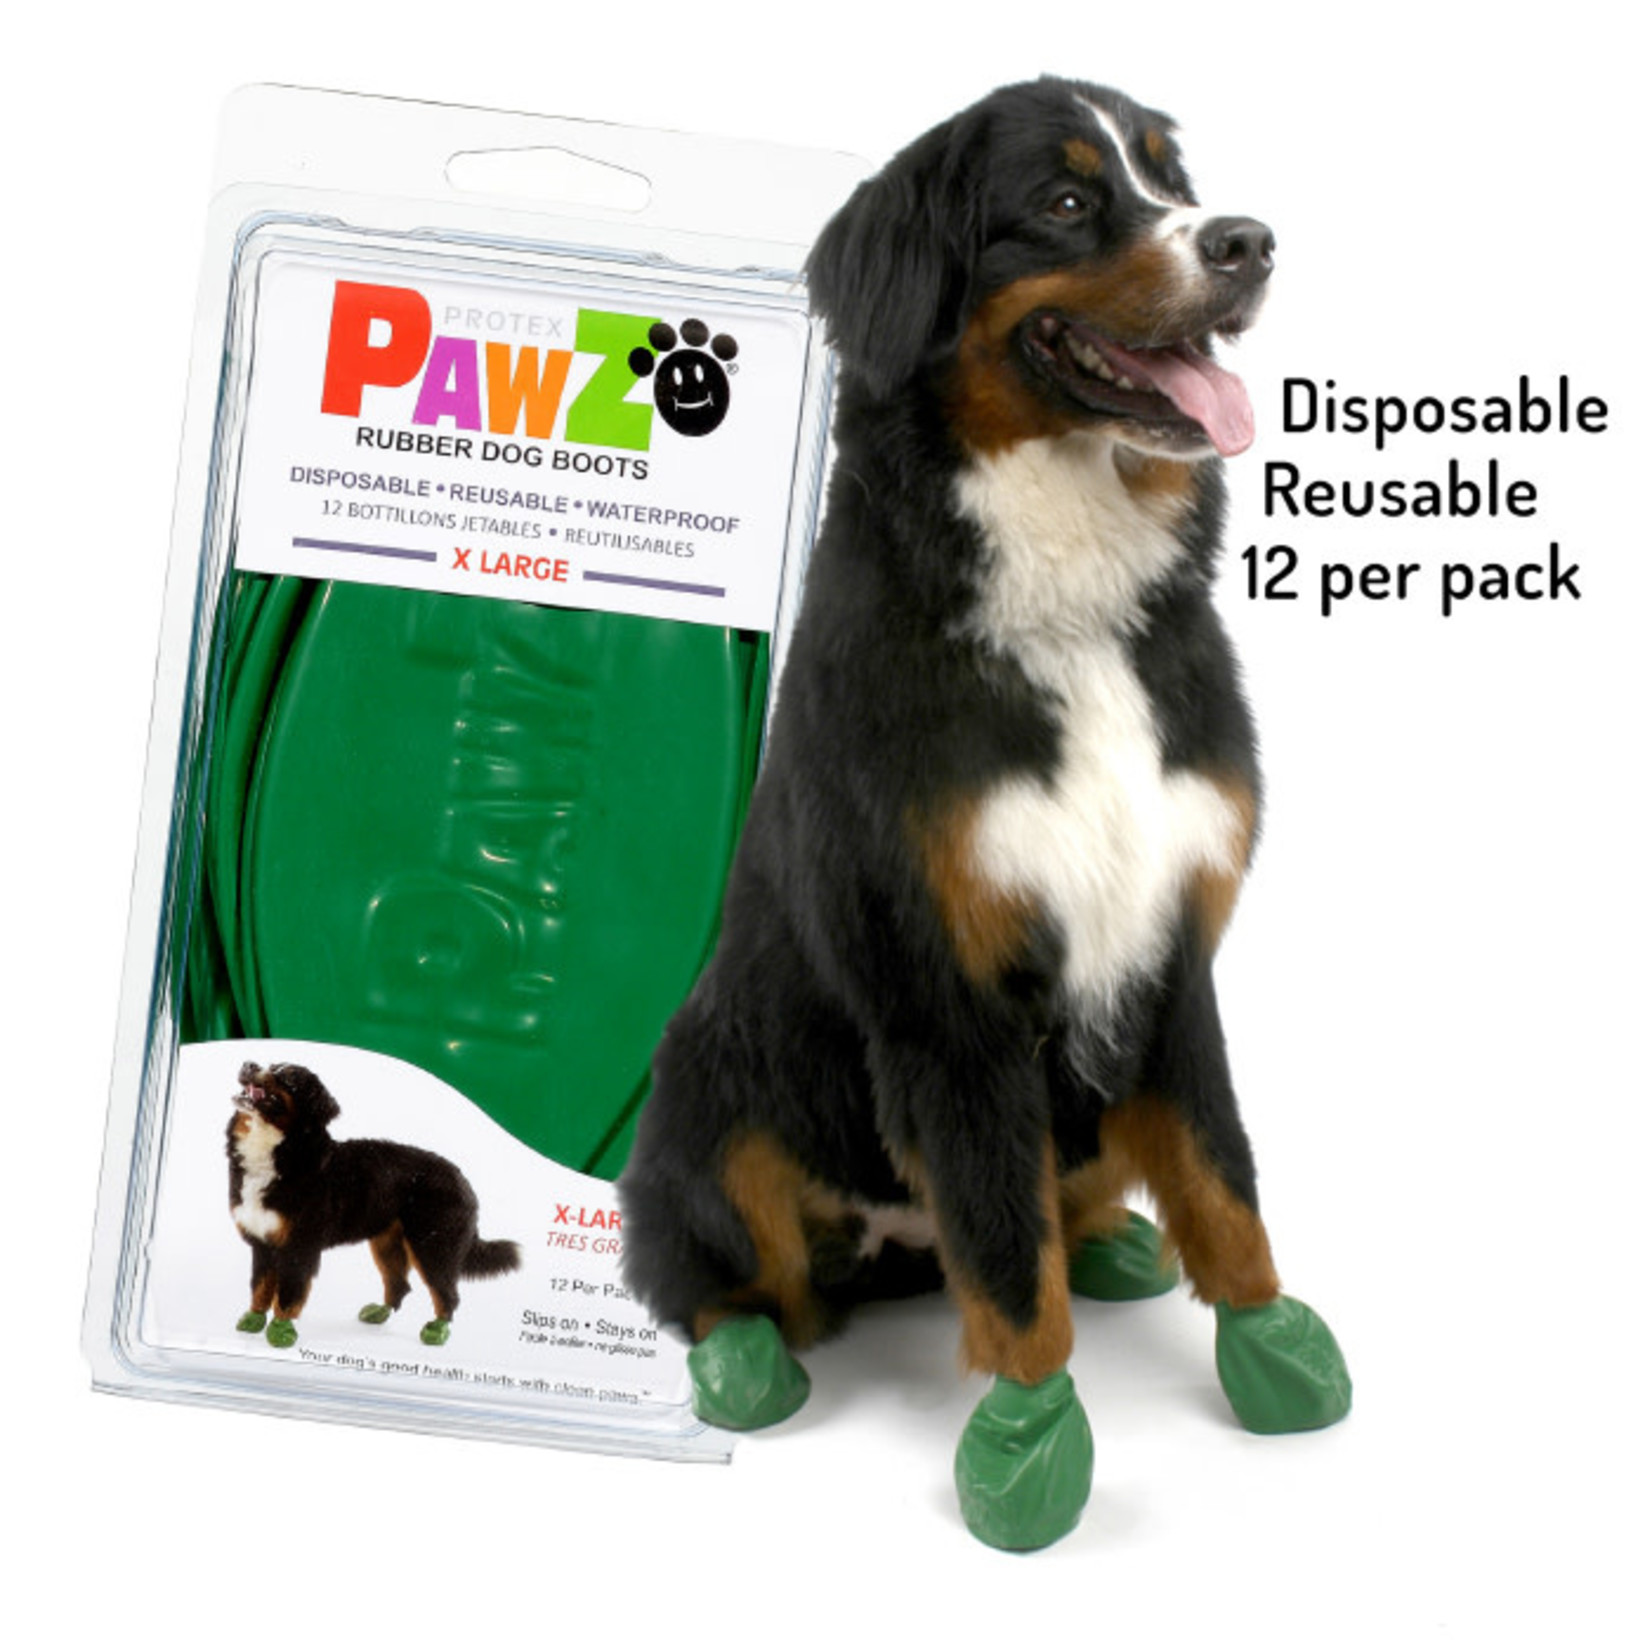 Pawz Dog Boots Green X-Large 12 Pack